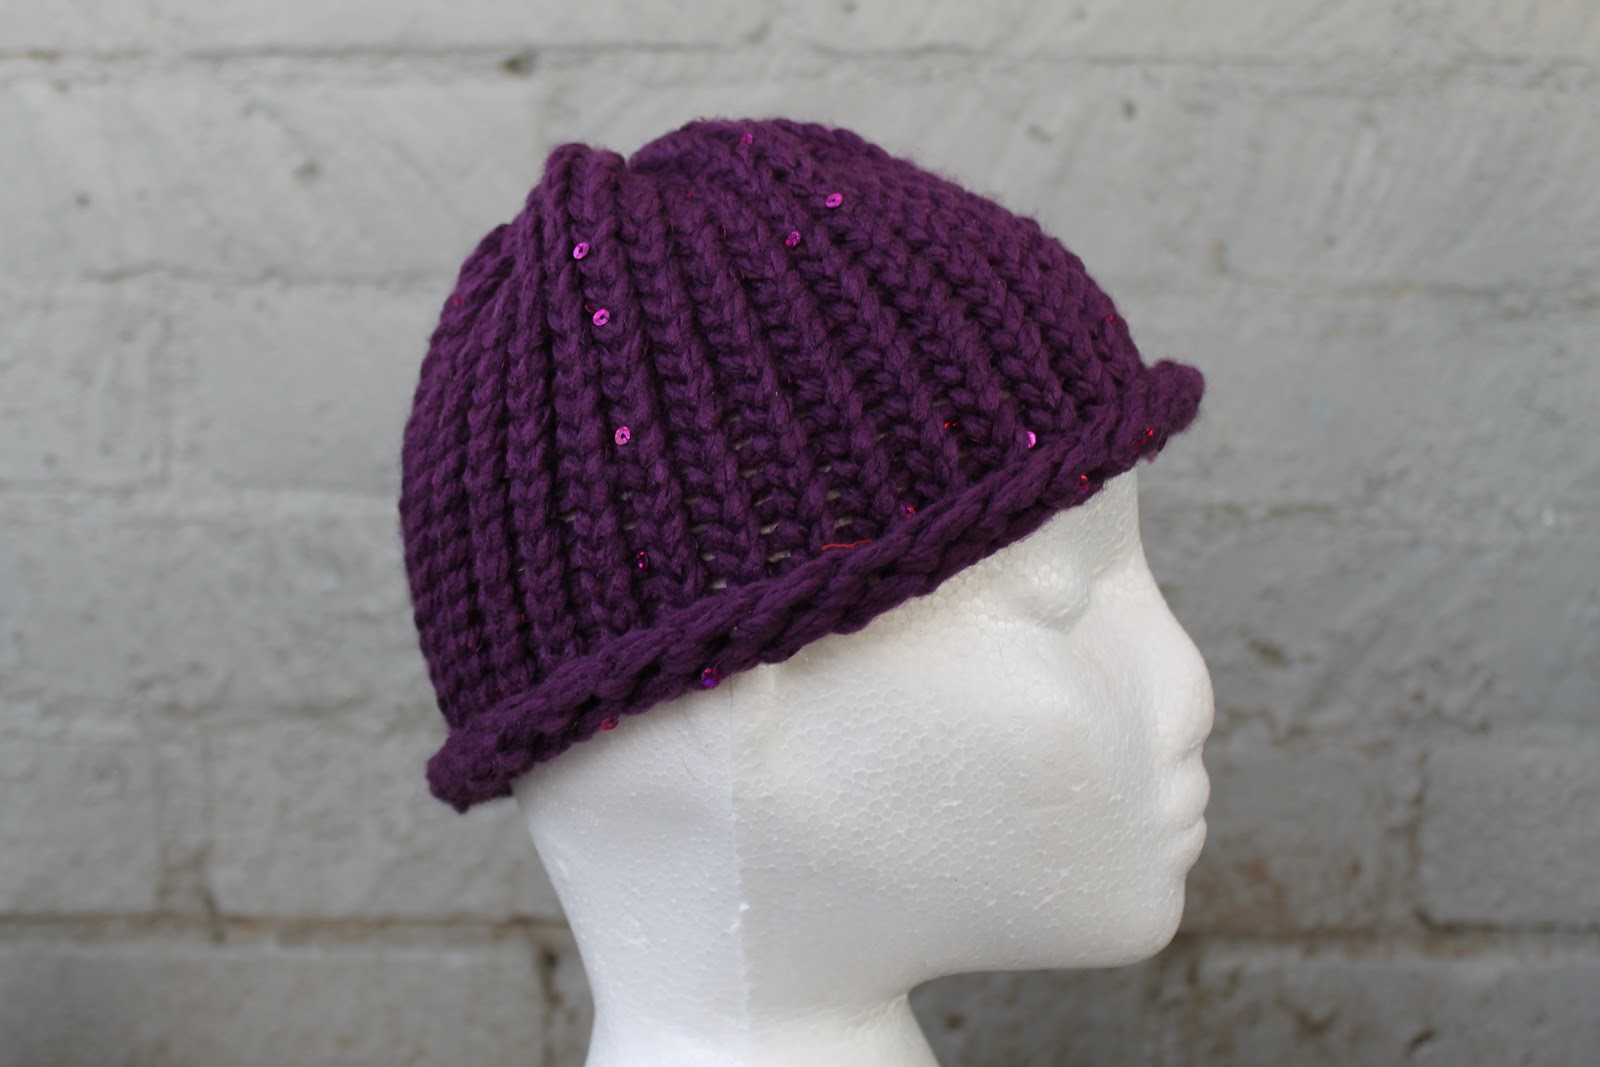 Ktog Knitting : Daniellesque knit together by love update